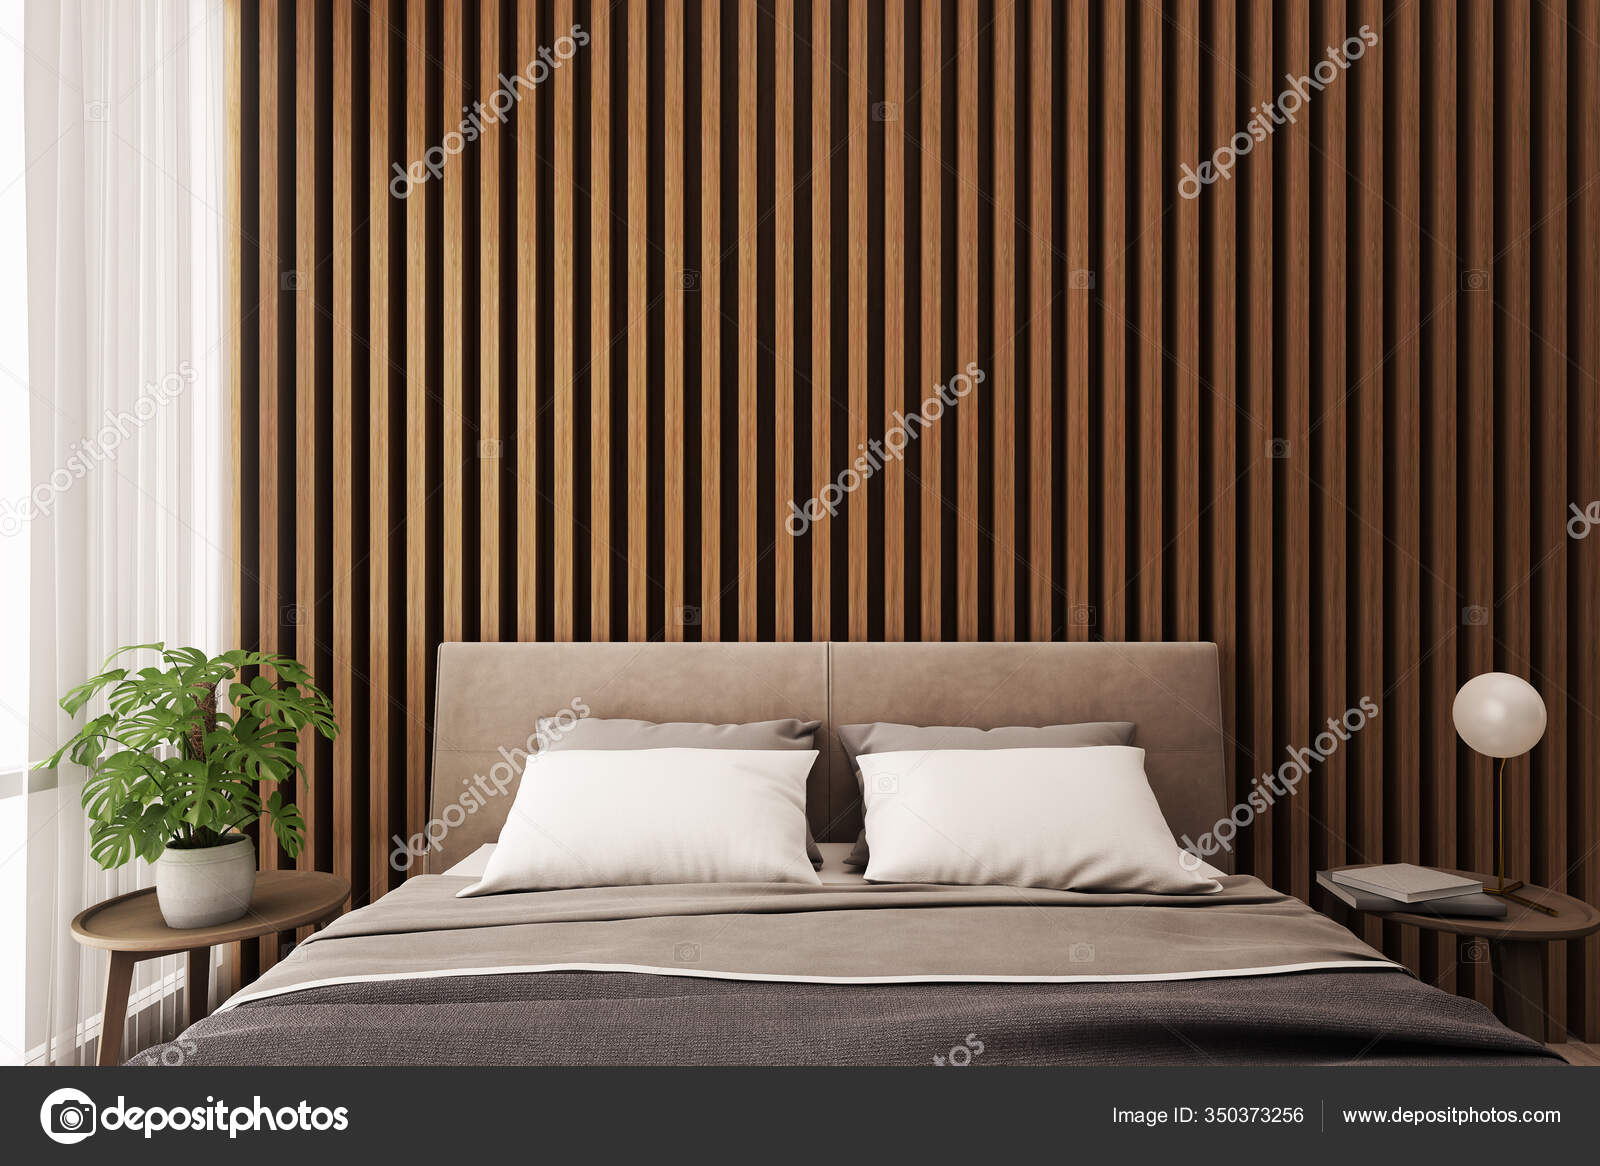 https depositphotos com 350373256 stock photo bedroom interior bed side table html